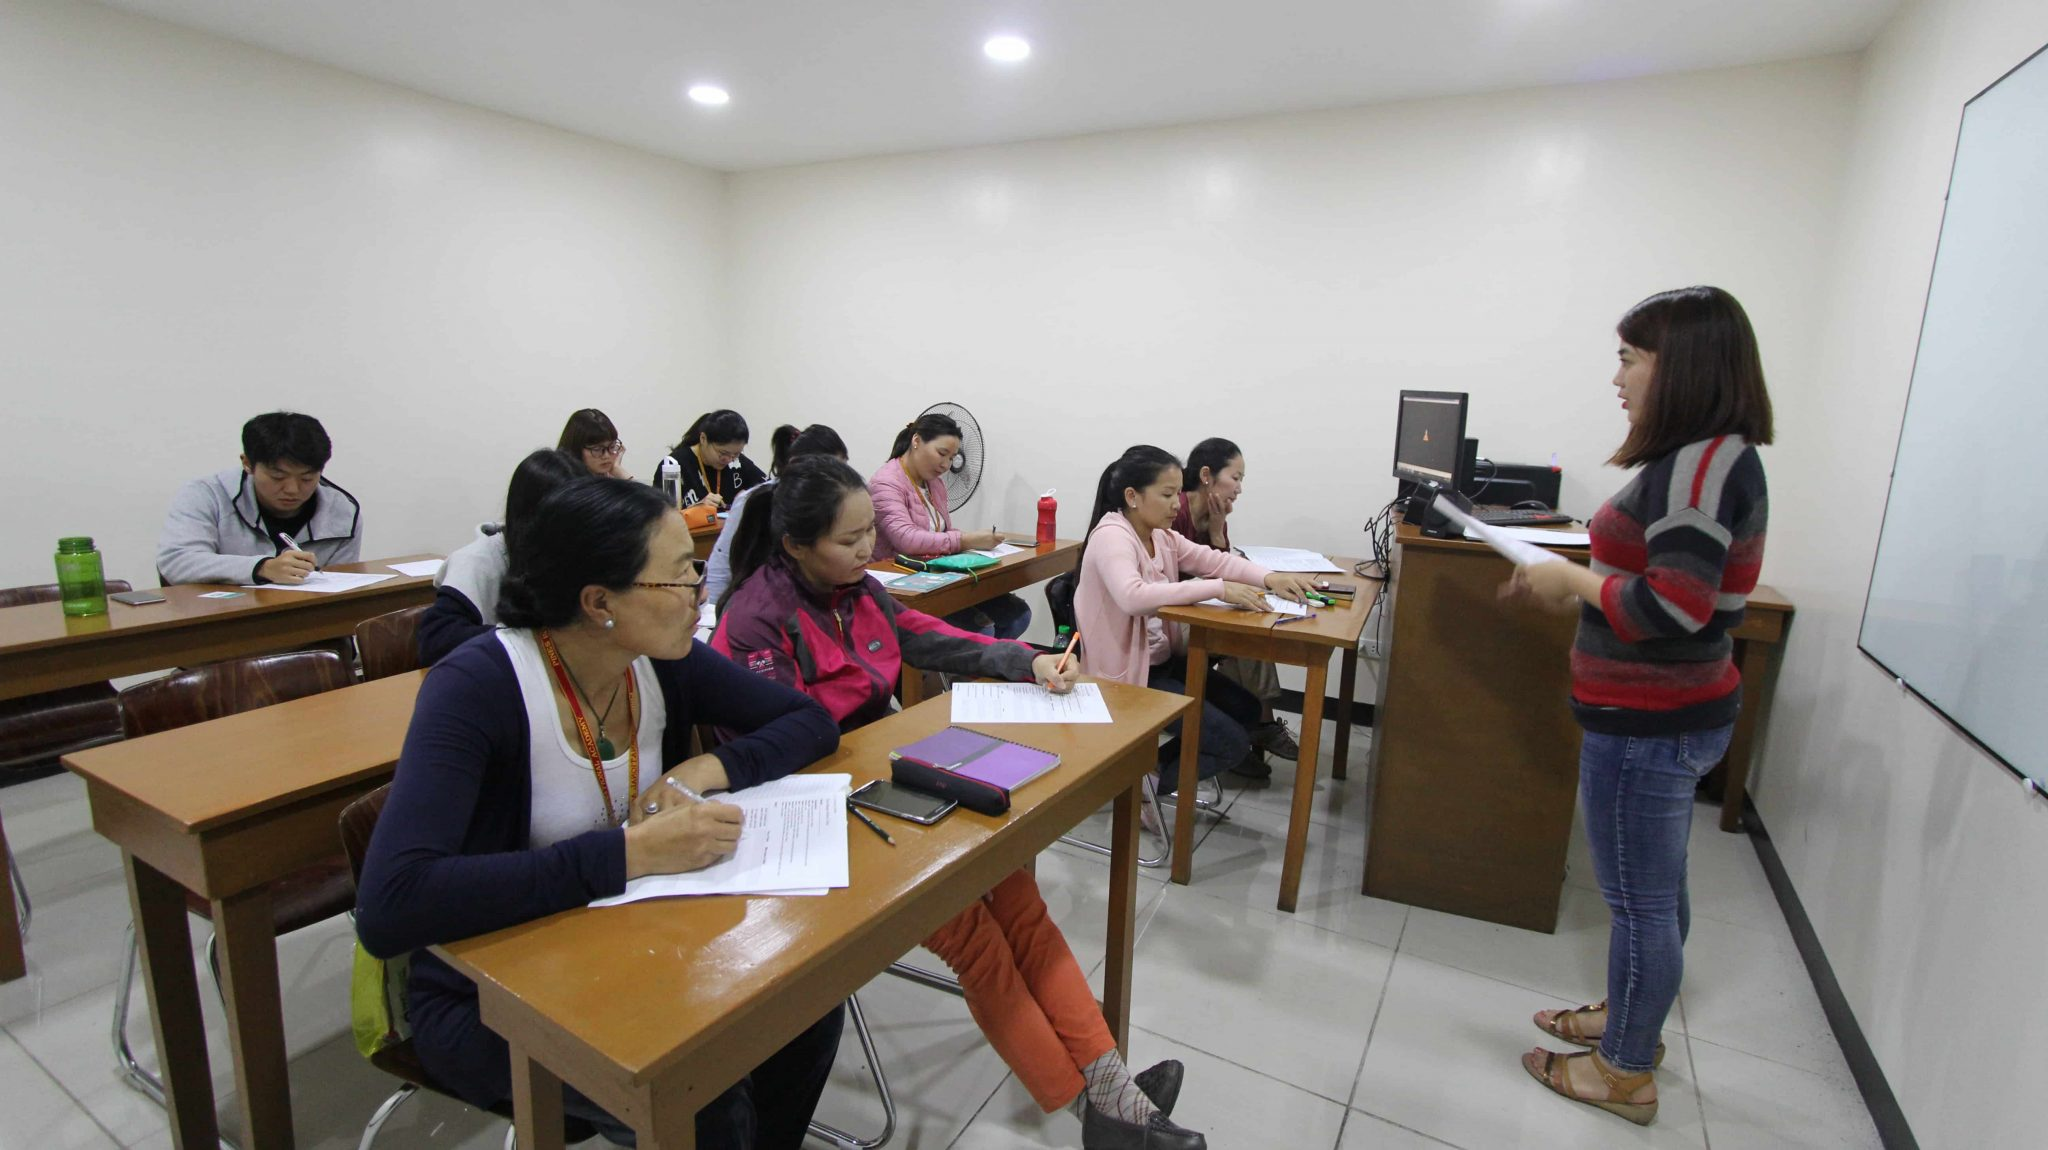 Study english in the Philippines, Philippine English academy, Philippine English academy facilities, Philippine English academy blog, Top Philippine English academy, best Philippine English Academy, Baguio English academy, English academy Baguio, Baguio English school Baguio English academy tuition fee, Baguio English academy facilities, Baguio English academy enroll